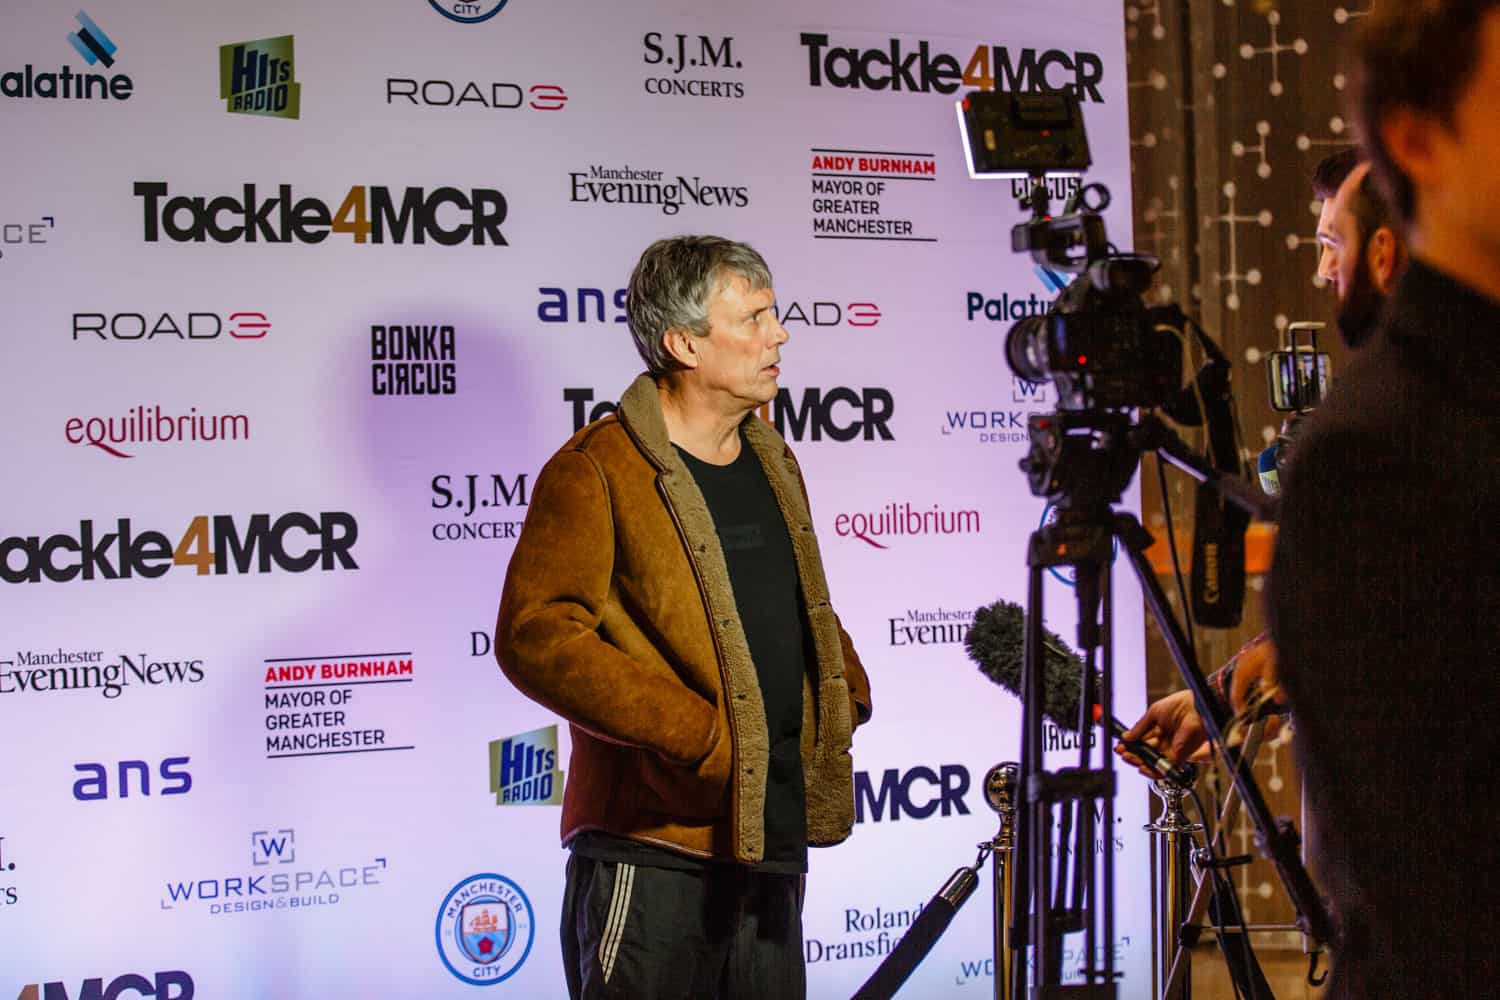 step and repeat for the hilton manchester